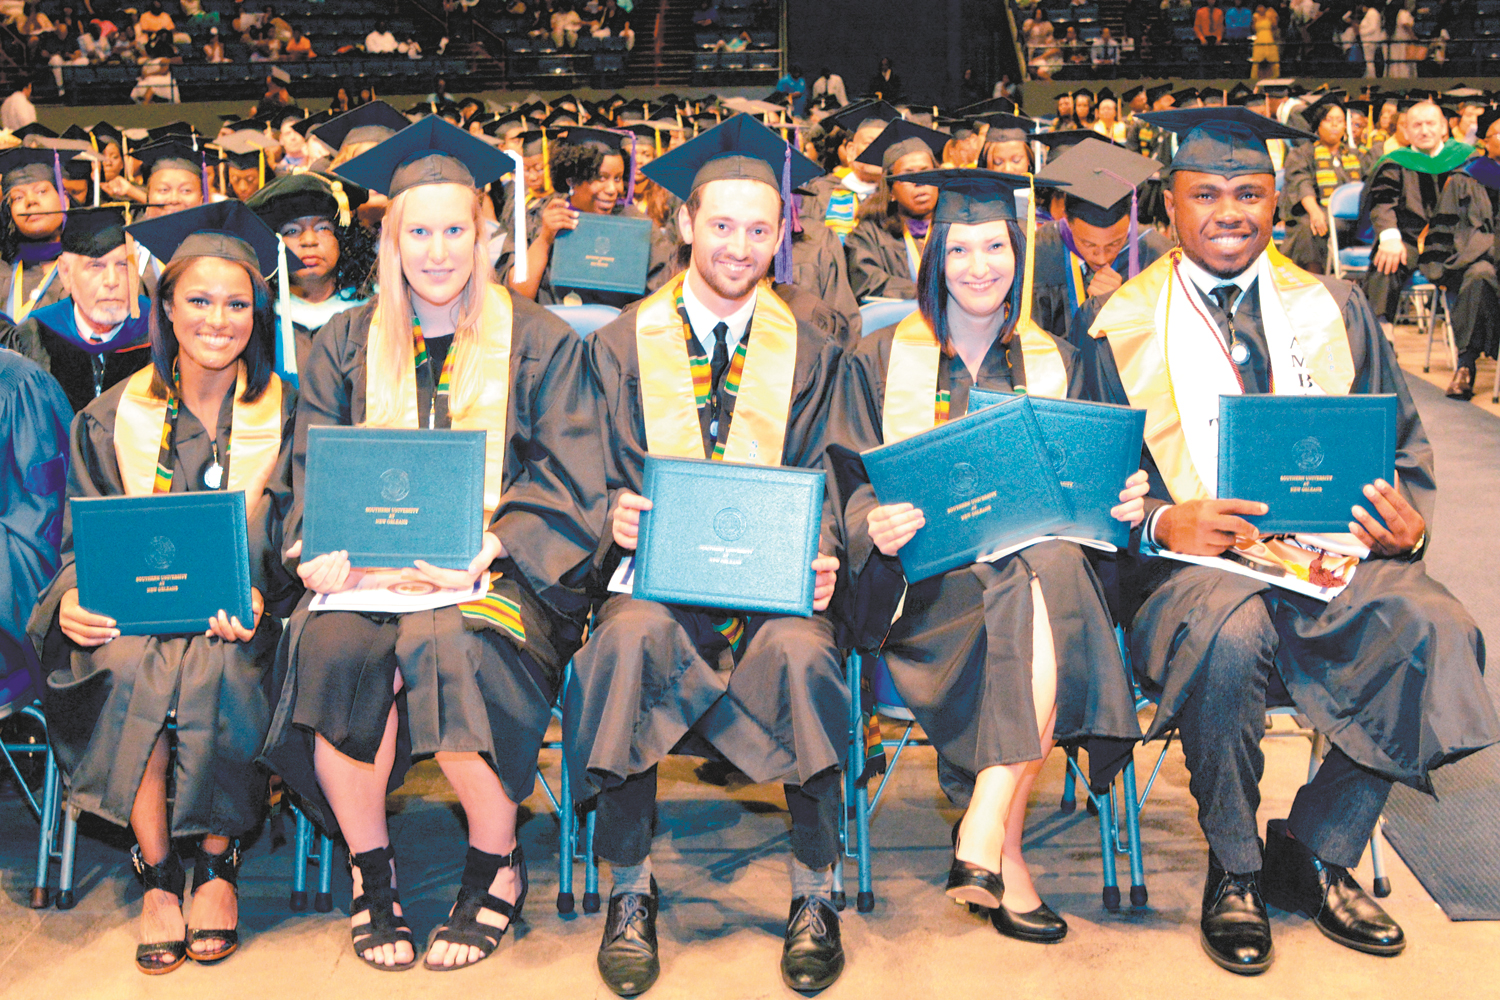 Southern University at New Orleans held its commencement exercises on May 7. Pictured are its 2016 Summa Cum Laude graduates, from left, Lakaley Melissa Tillery, Jana Reininghaus, Jesse Drew Roger, Stephanie Buhl and top grad Samuel Okpechi.